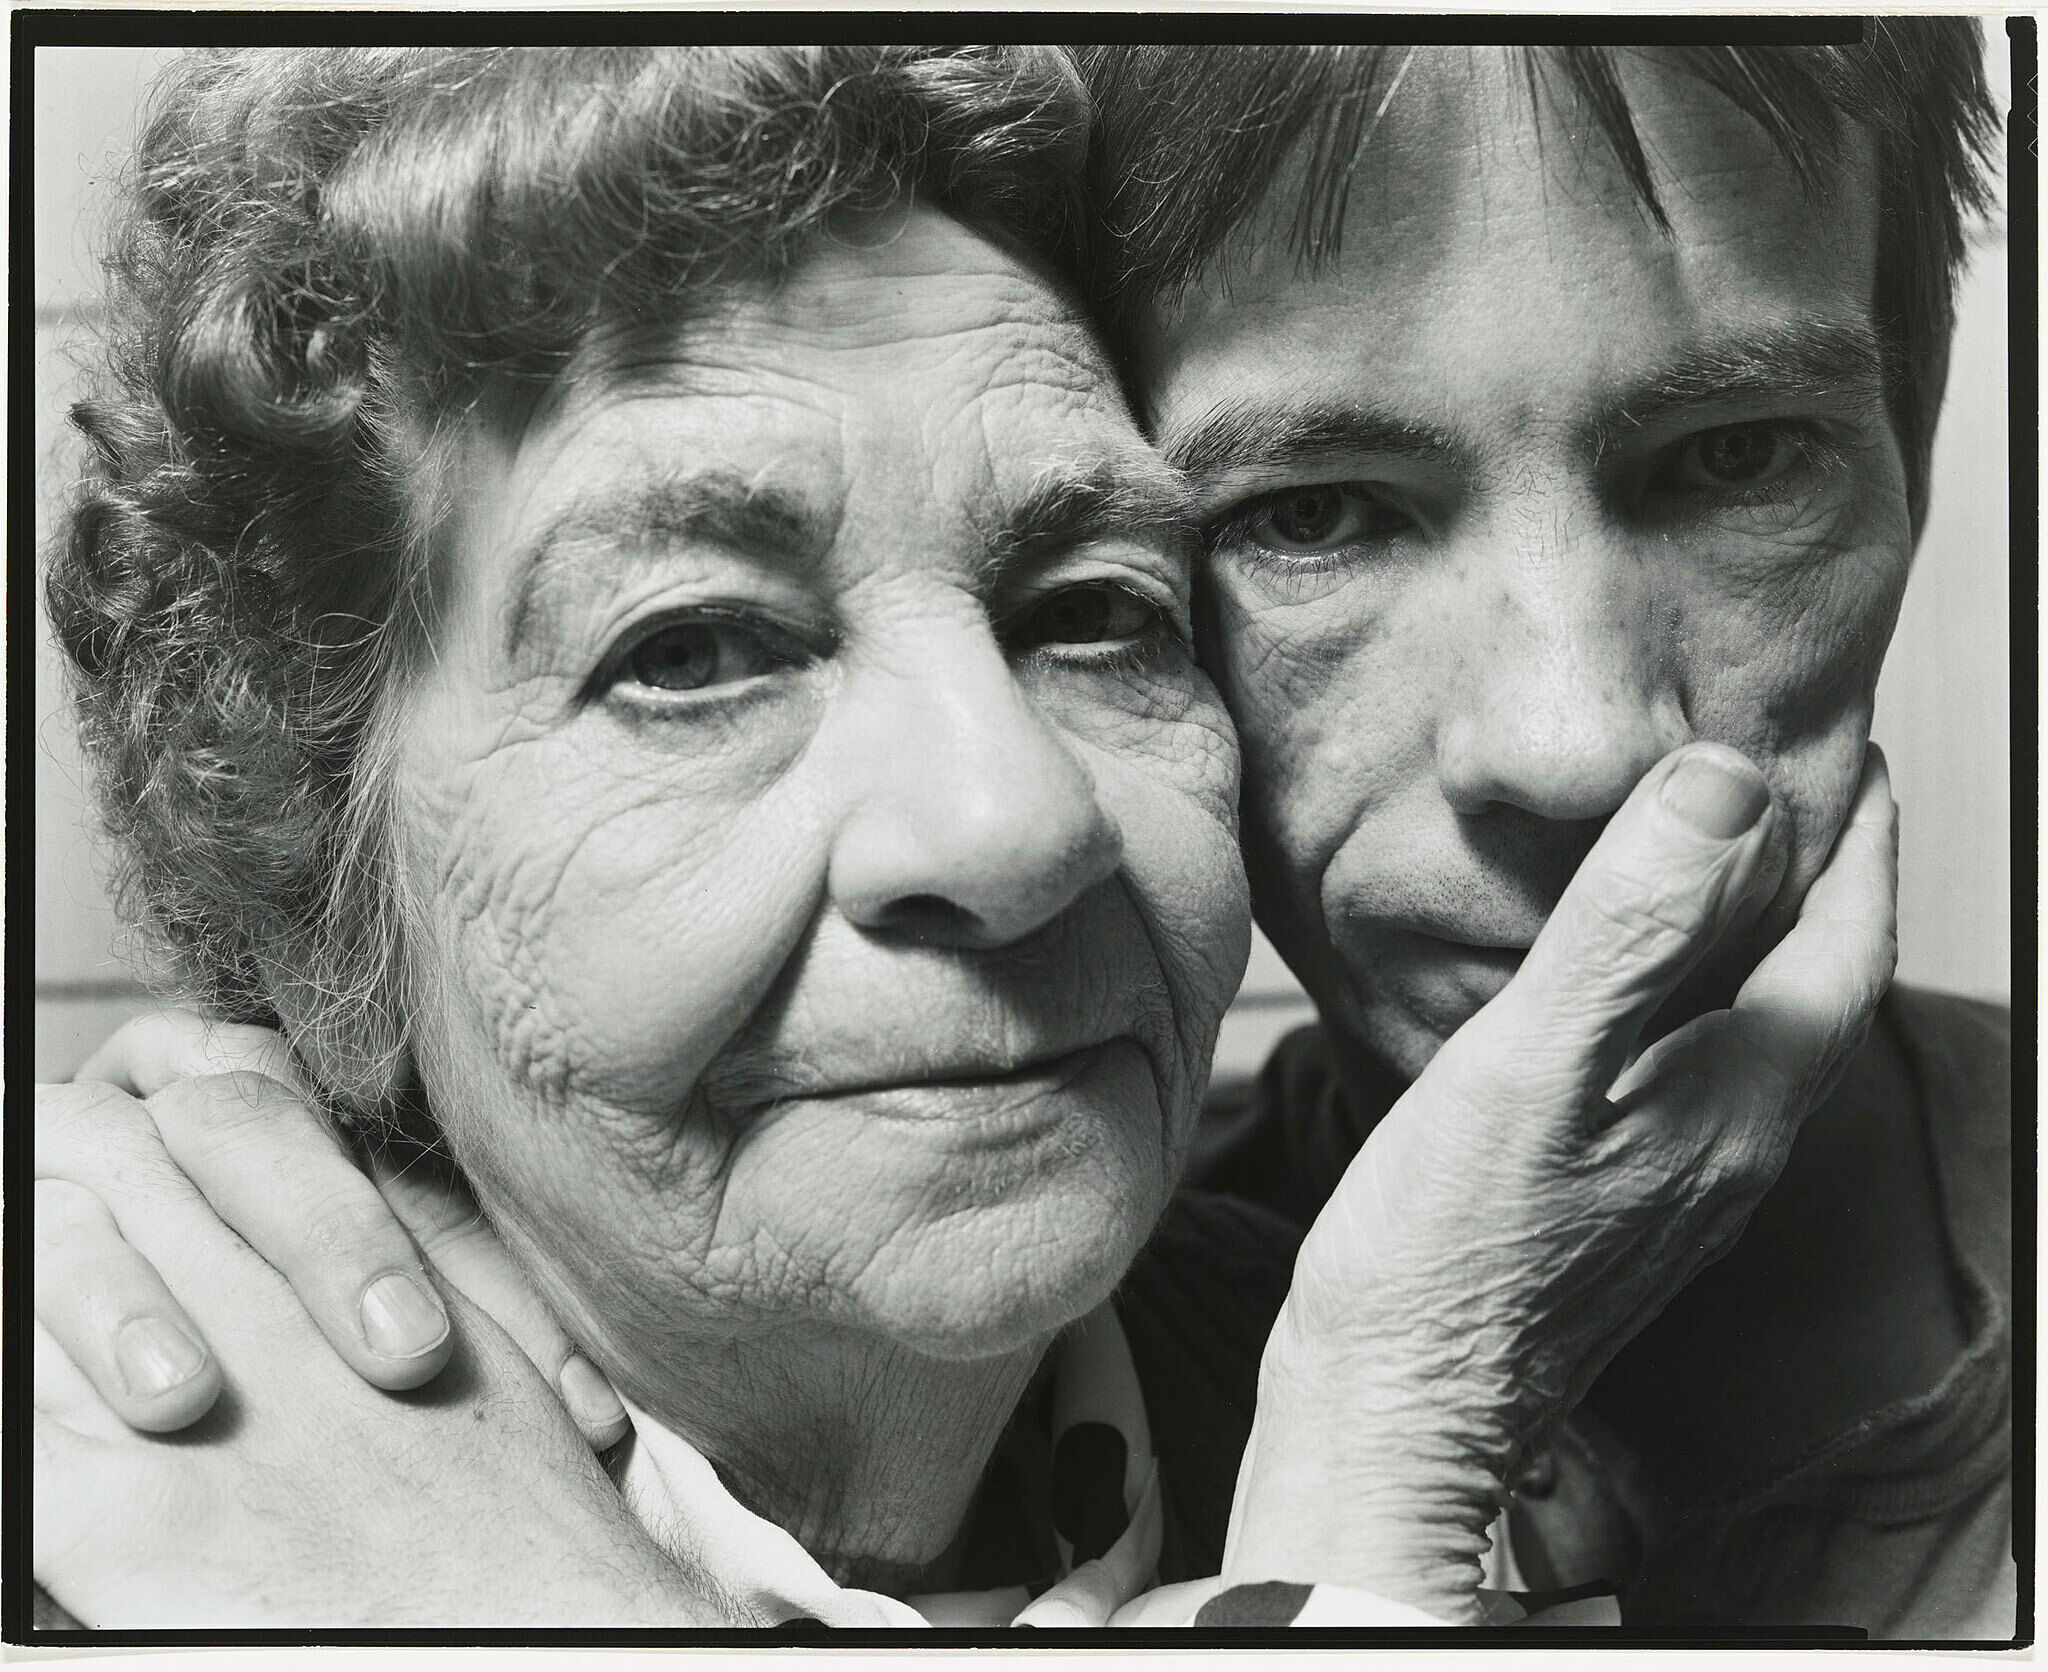 A black-and-white photograph by Nicholas Nixon. A woman touches the face of a younger man.